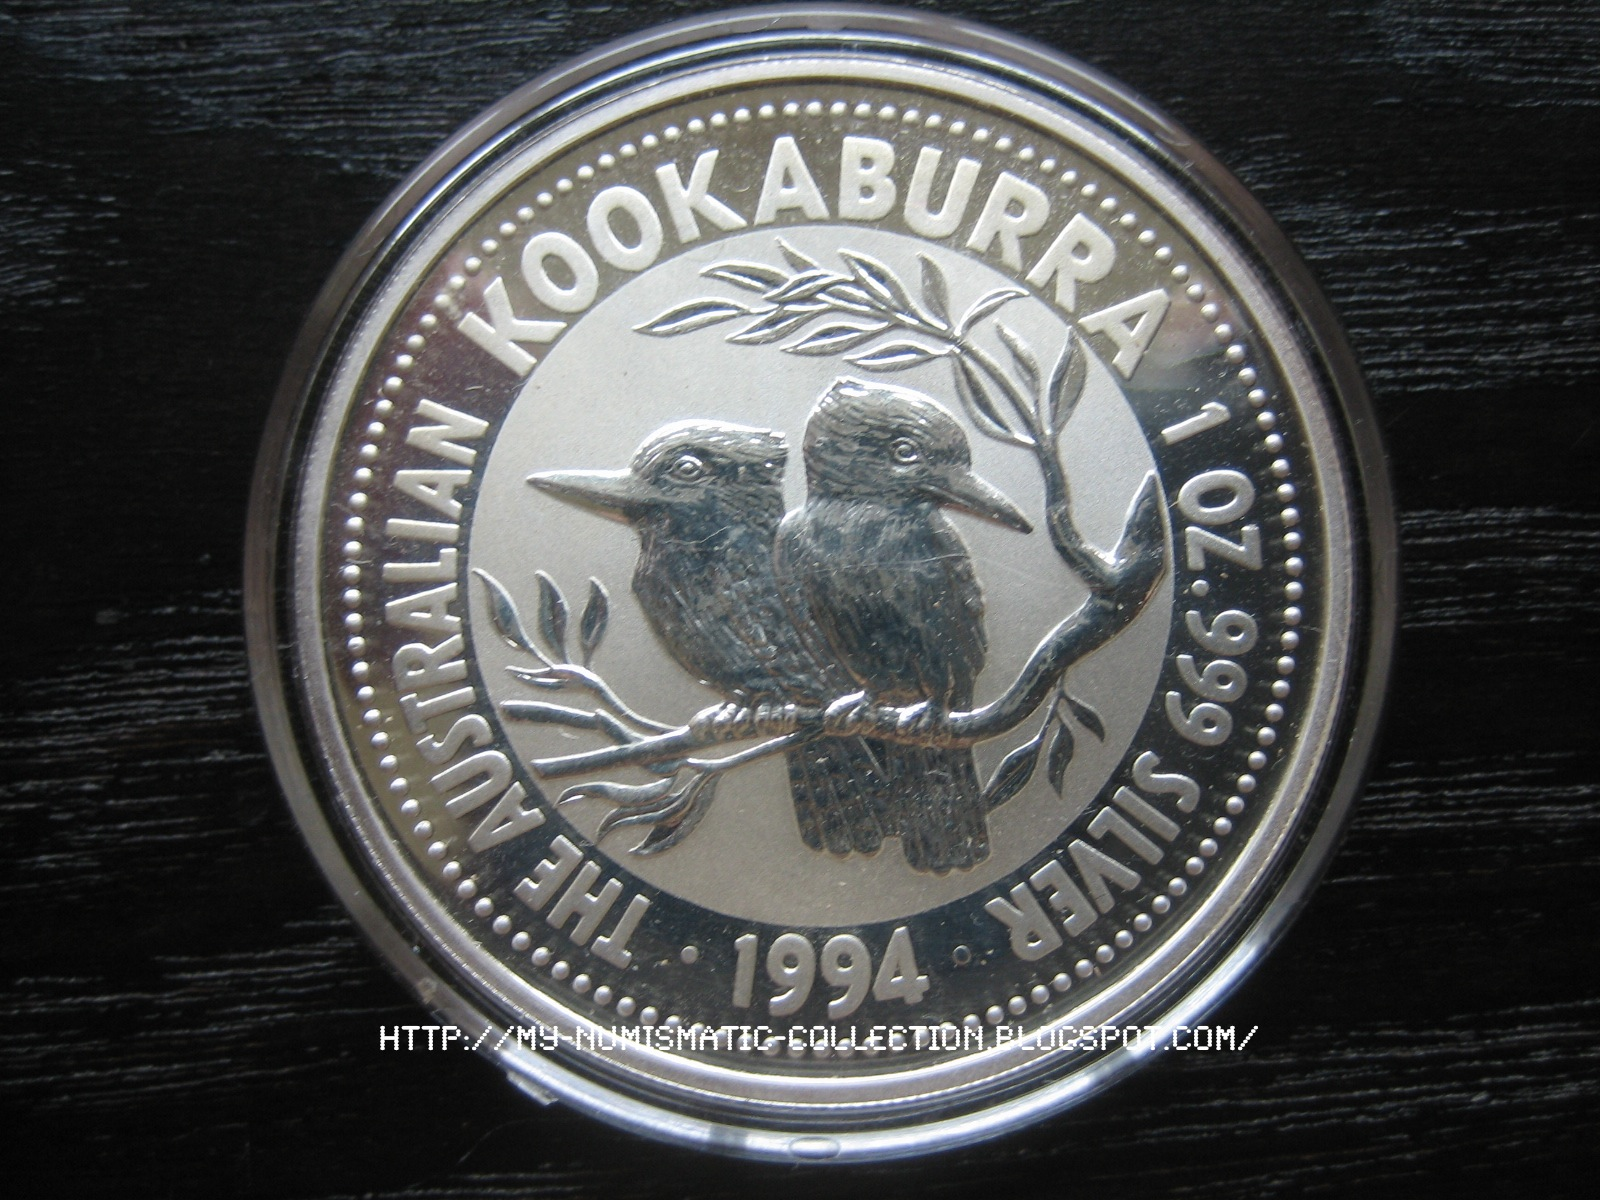 Numismatic Collection 1994 Australian Silver Kookaburra